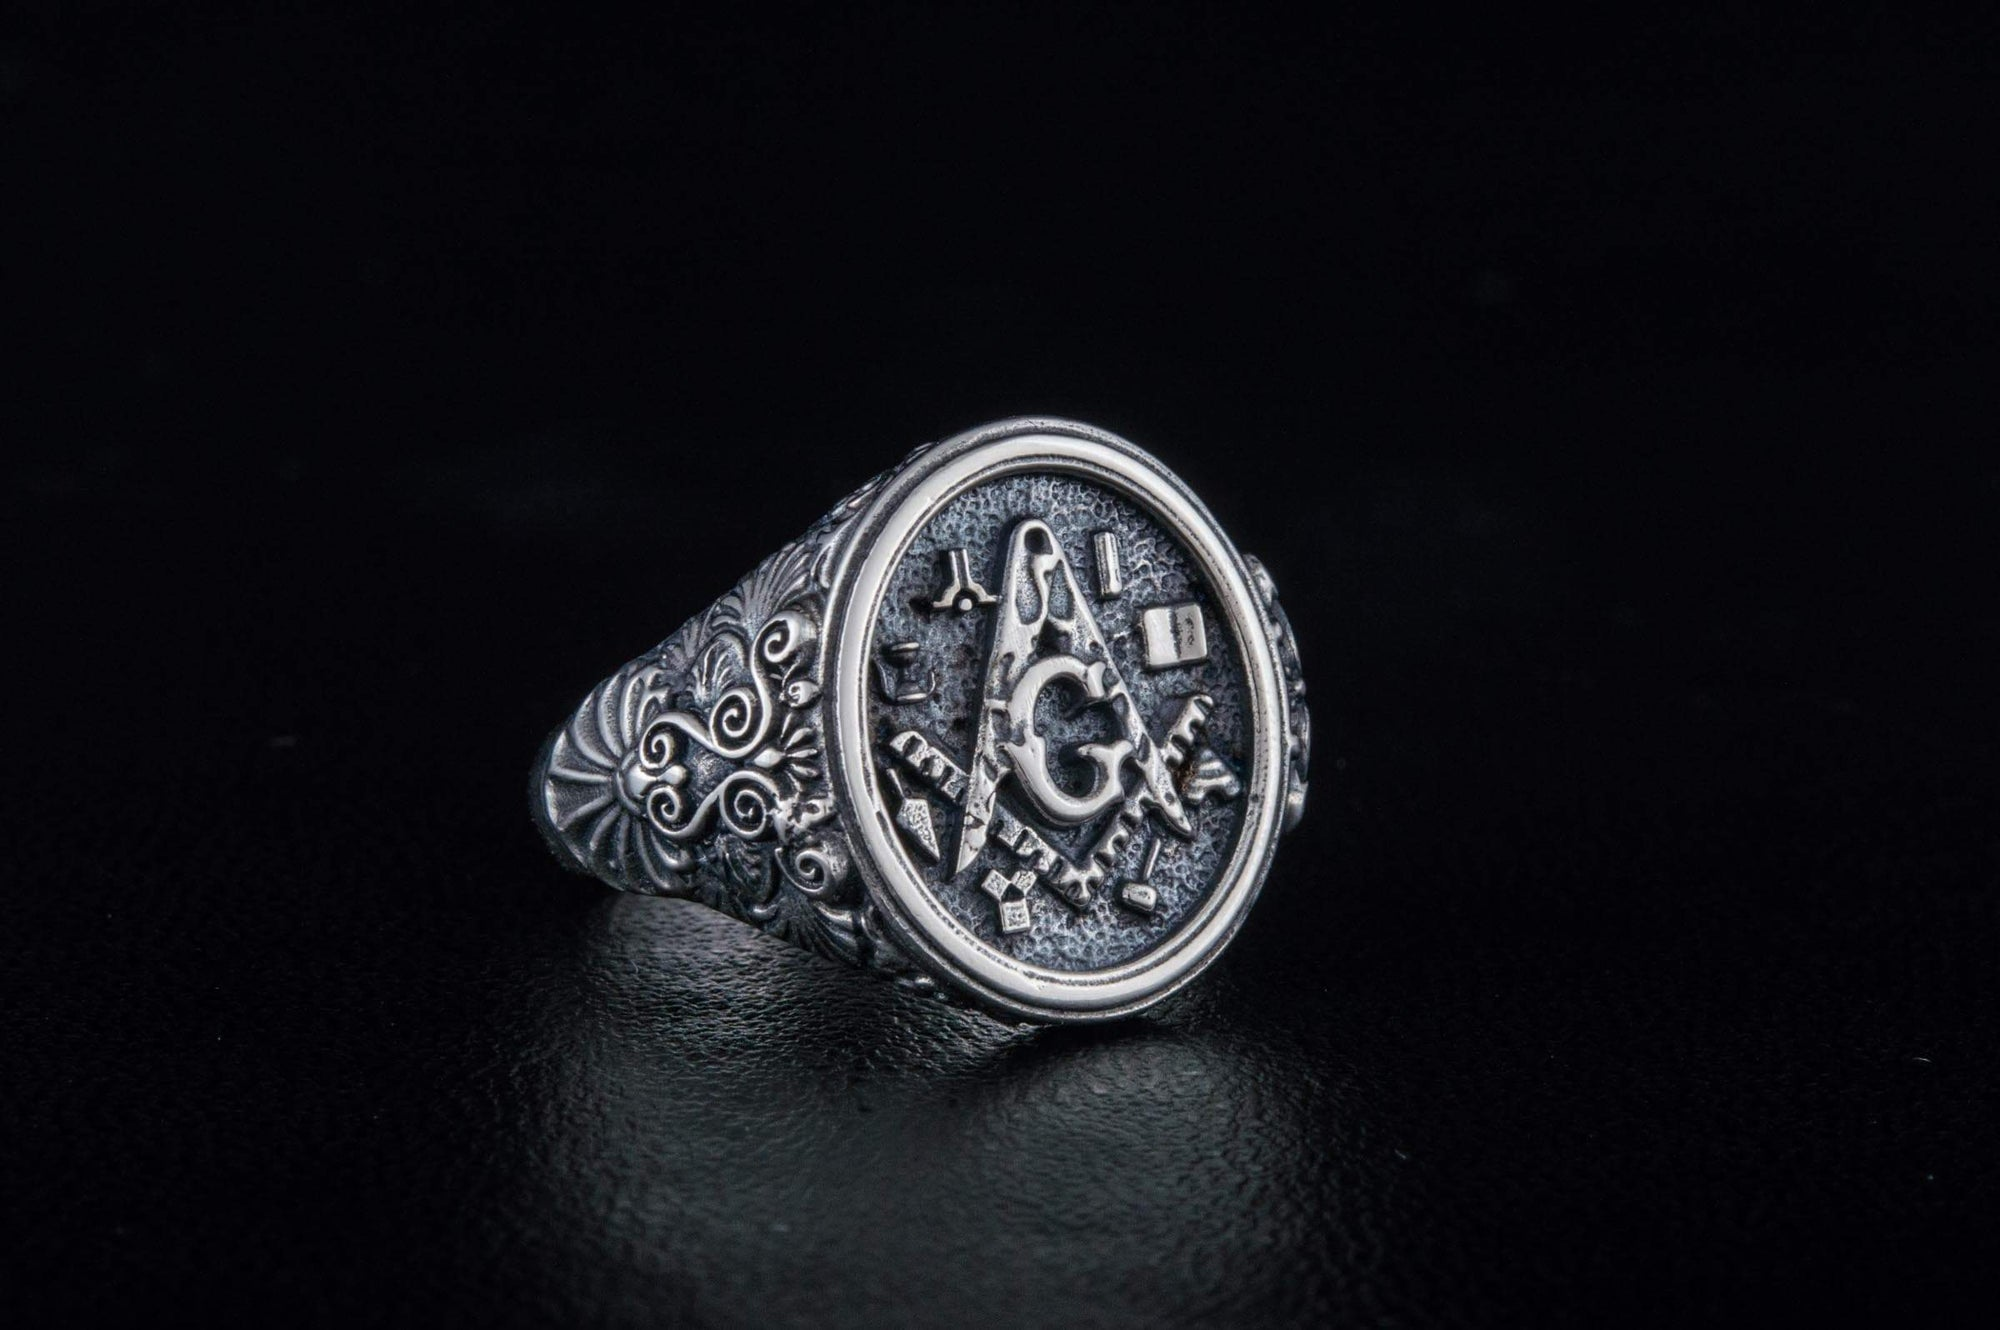 Rings Freemason Square & Compass with Masonic Symbols Sterling Silver Ring Ancient Treasures Ancientreasures Viking Odin Thor Mjolnir Celtic Ancient Egypt Norse Norse Mythology